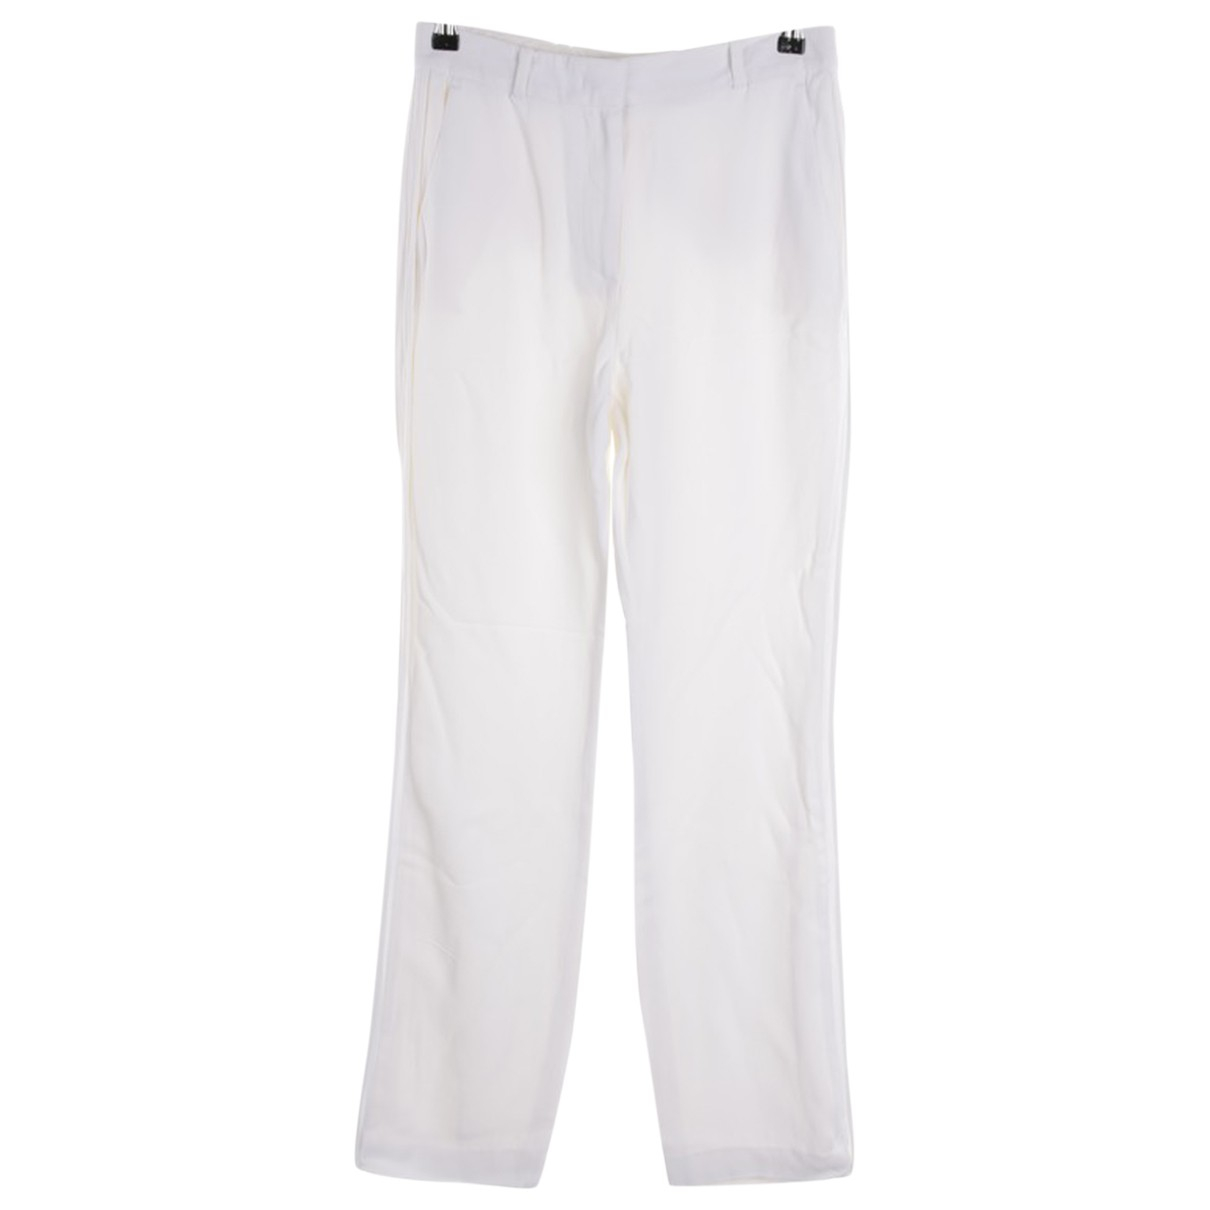 Givenchy \N White Trousers for Women 34 FR